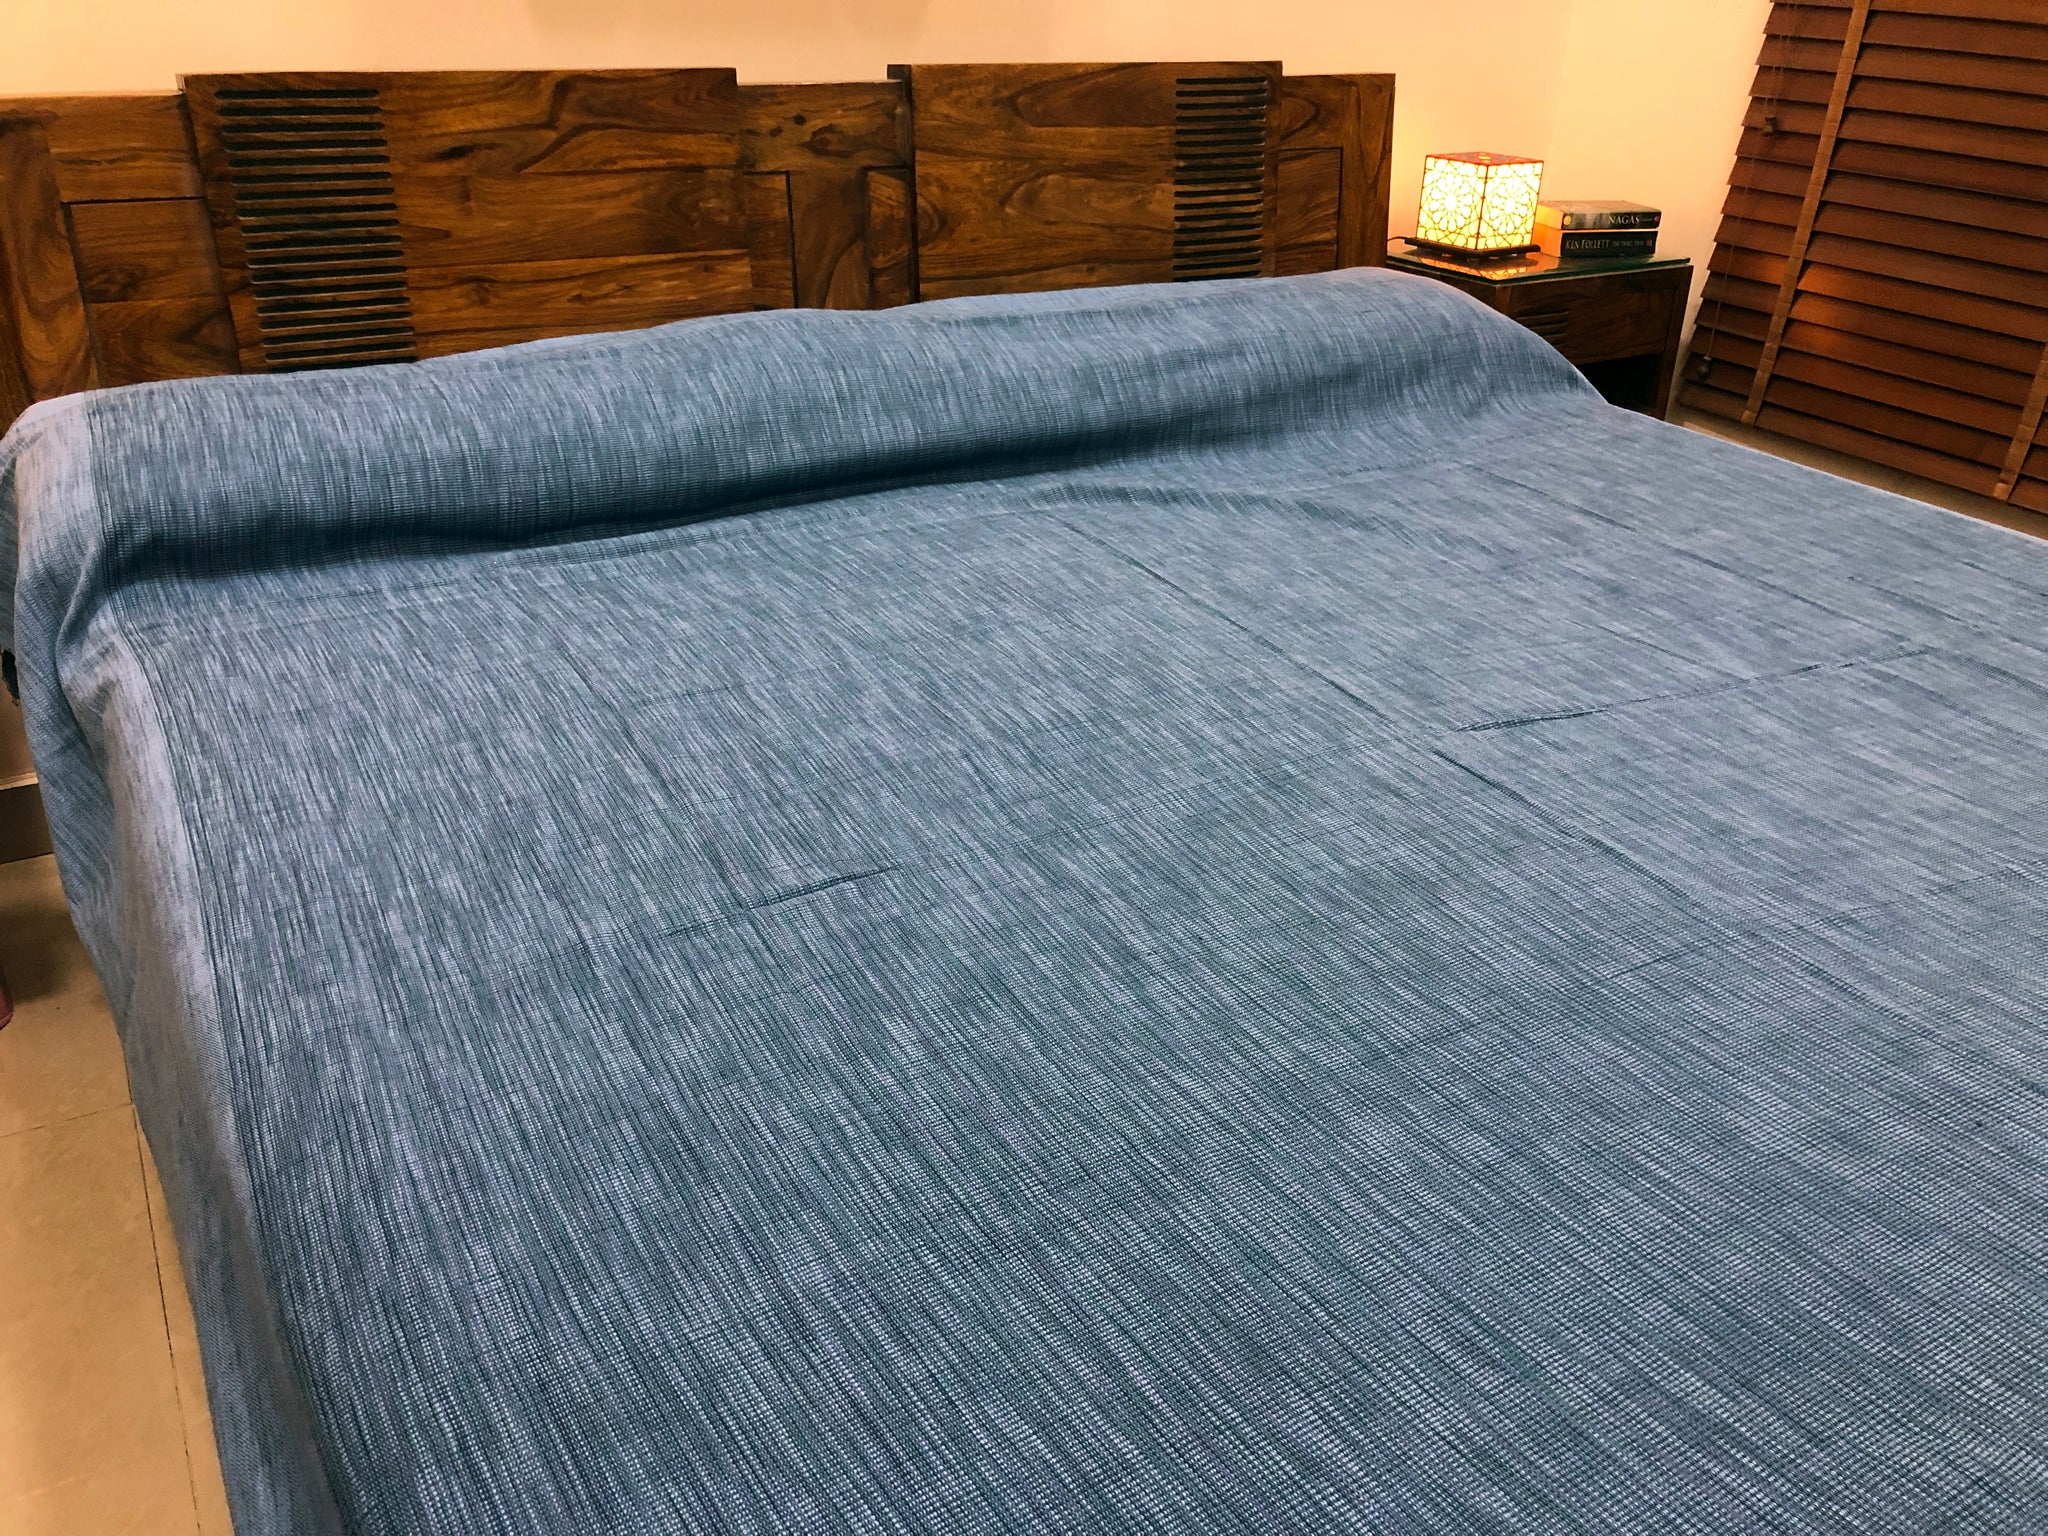 textured-blue-bed-spread-online-at-low-rates